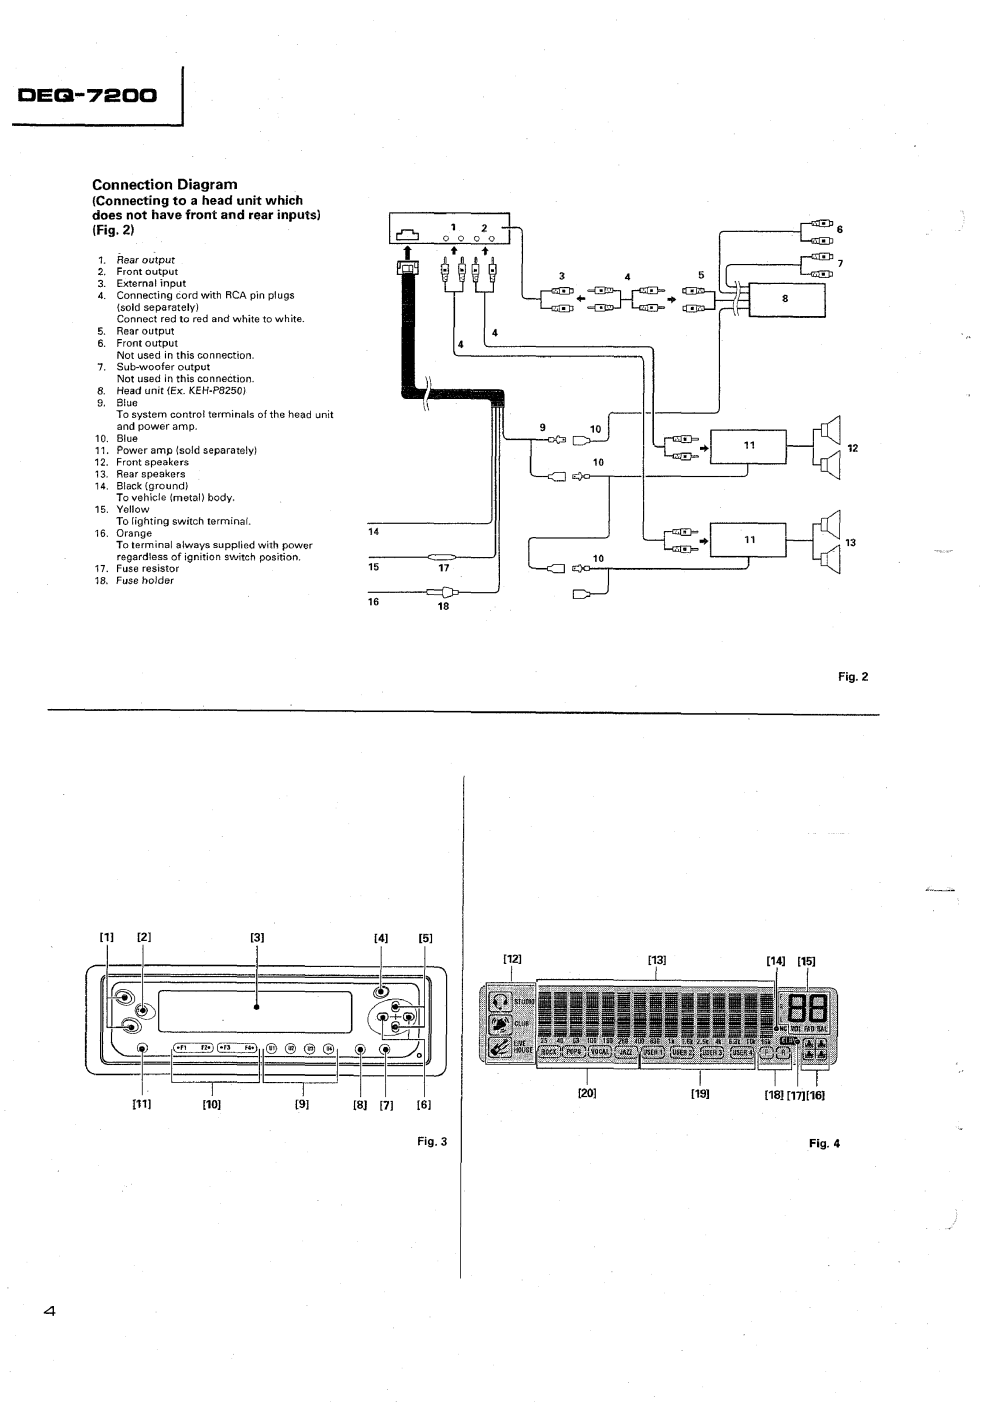 medium resolution of pioneer equalizer wiring diagram wiring diagram third level rh 2 6 21 jacobwinterstein com deh x6500bt pioneer deh p6500